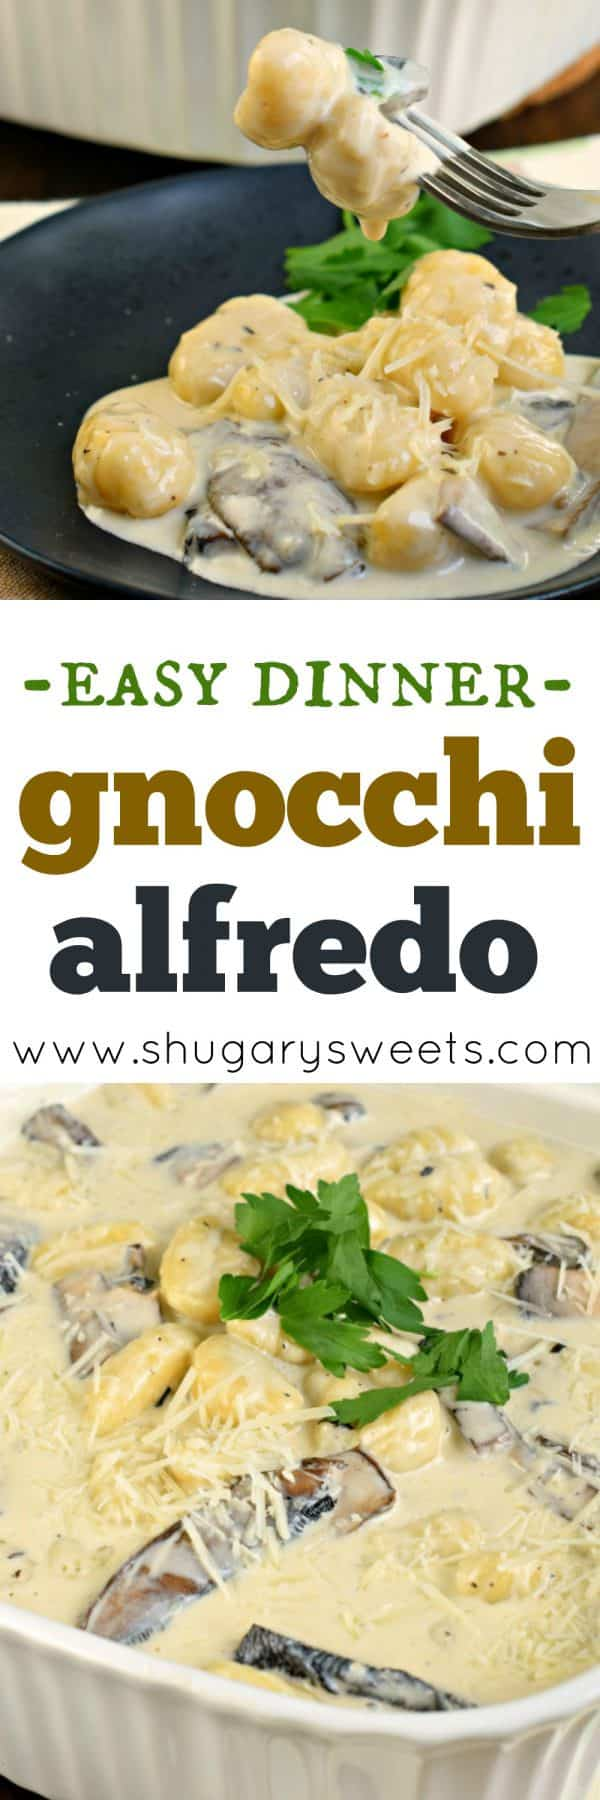 You'll love this delicious Gnocchi Alfredo with Portobello Mushrooms for your next weeknight meal! Ready in 30 minutes, it's perfect for your busy nights, yet impressive enough to serve guests for dinner!